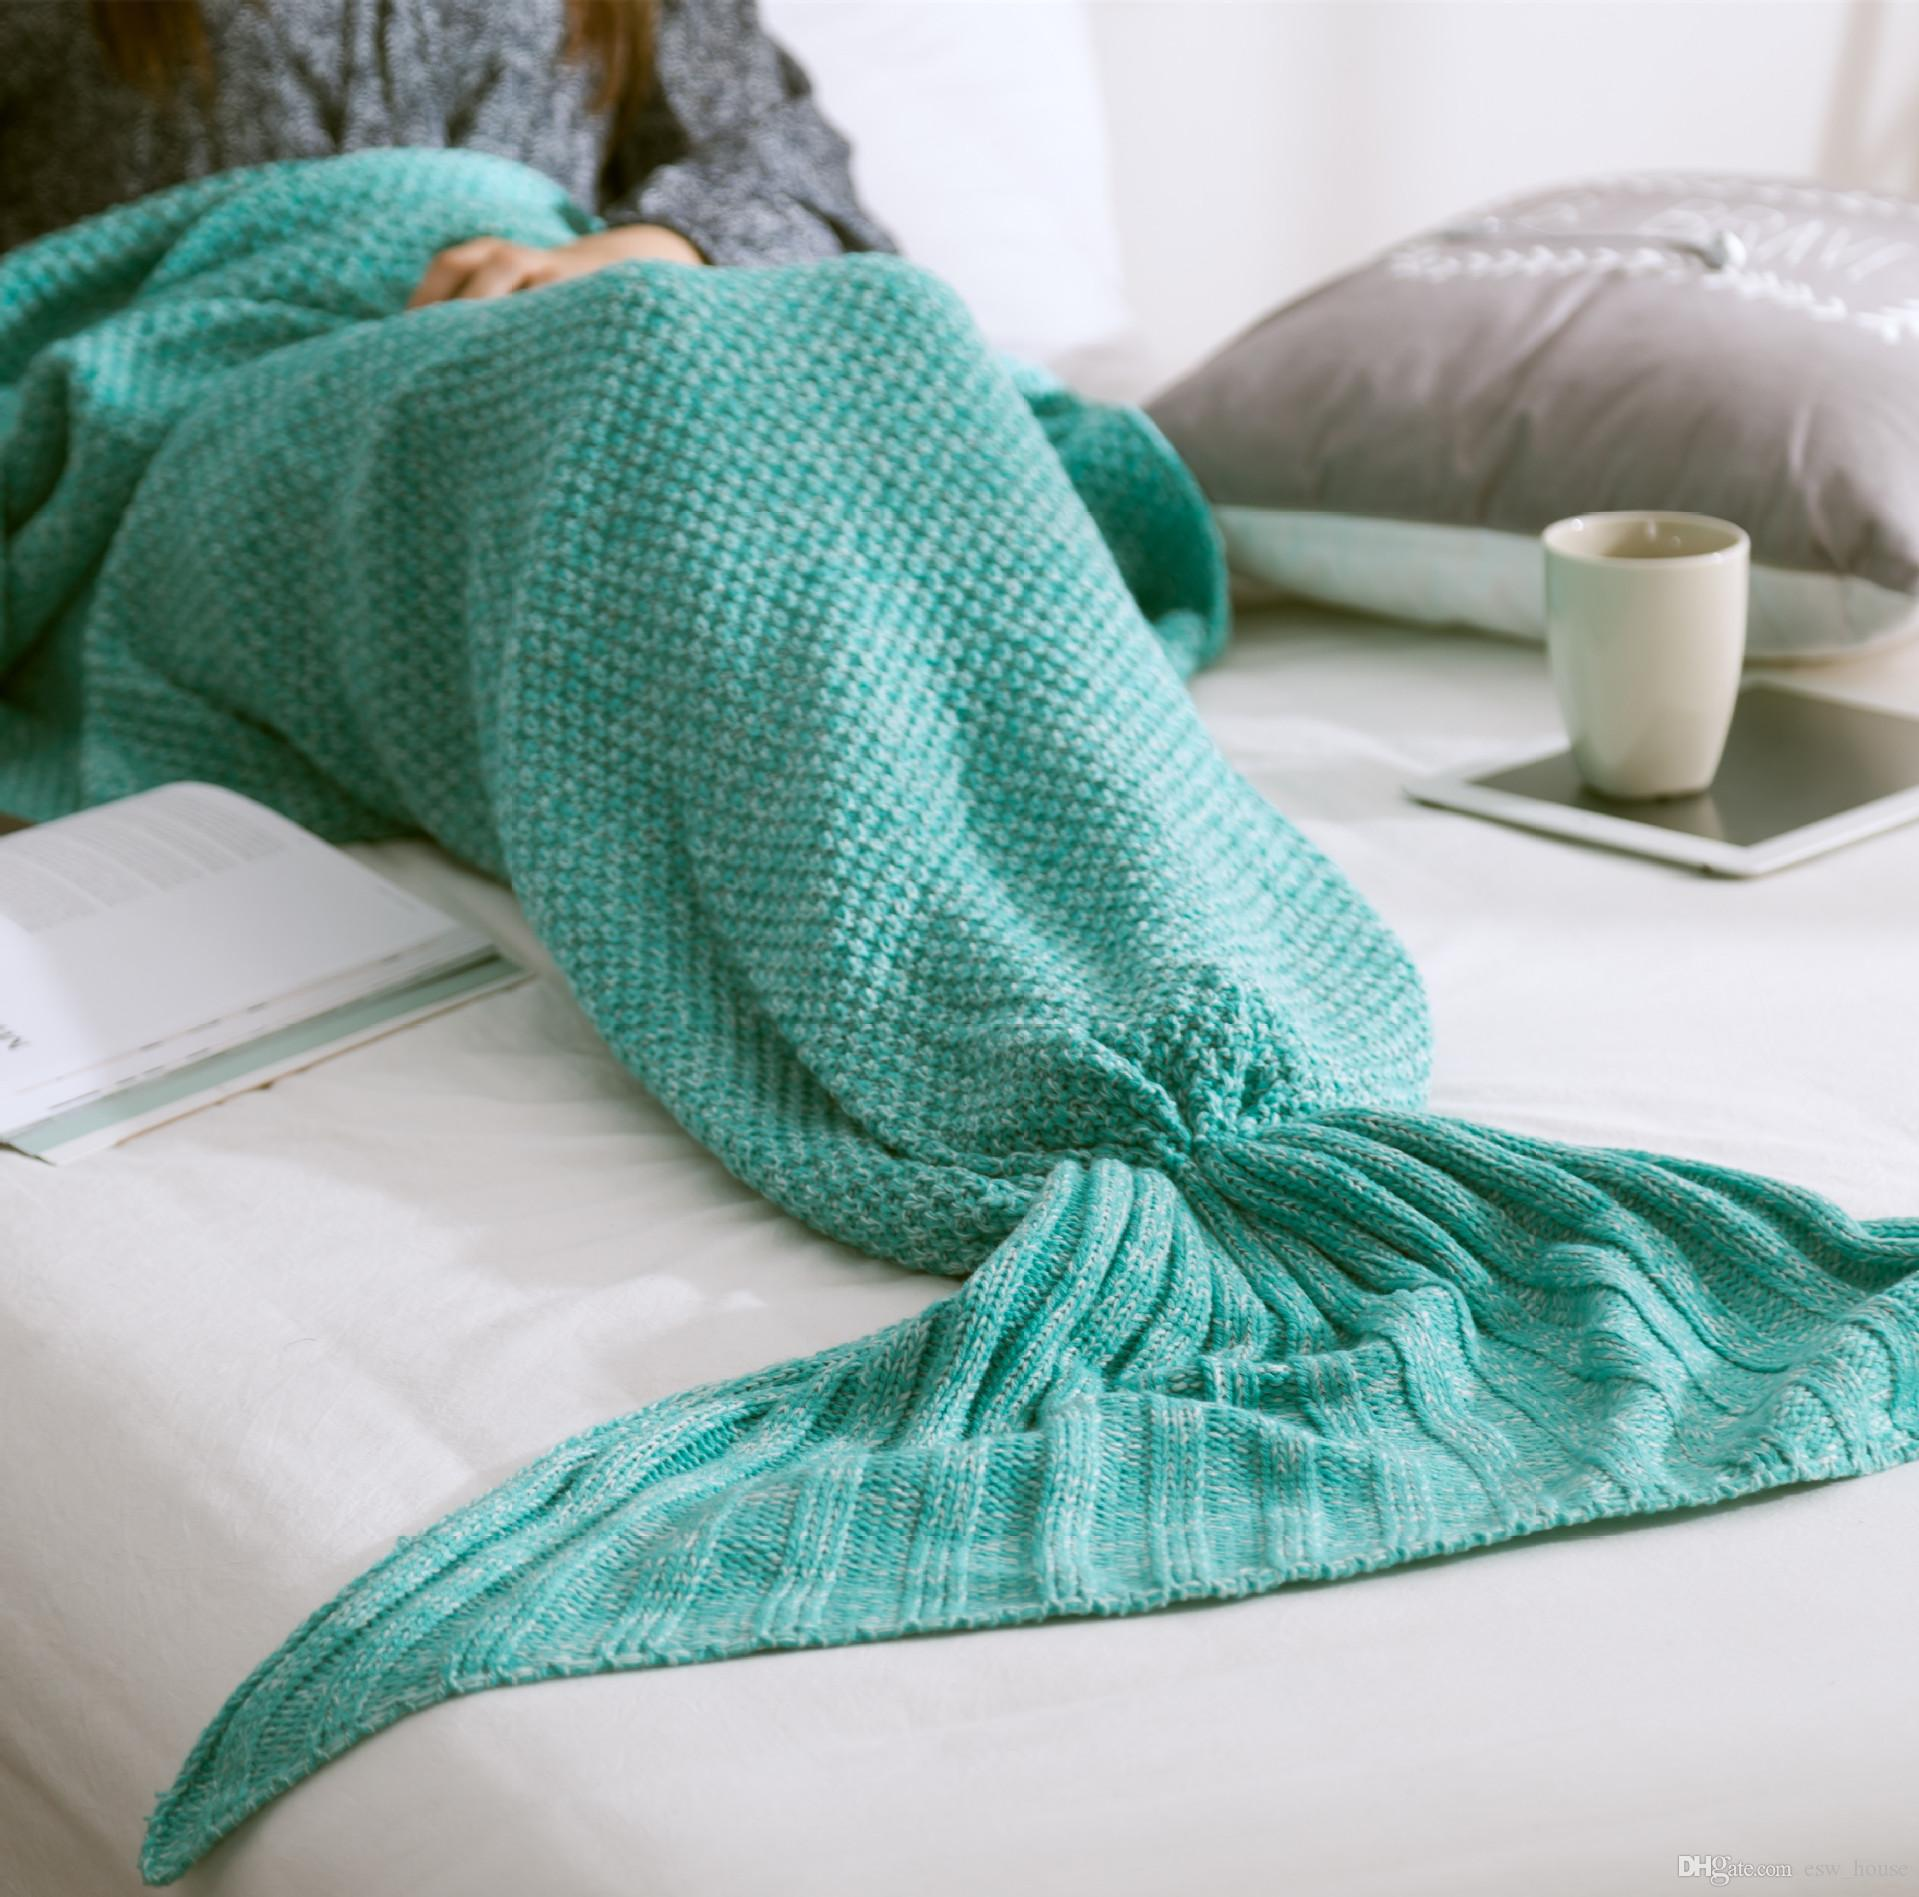 New 80*180cm Crochet Mermaid Tail Blanket Super Soft Warmer Blanket Bed Sleeping Costume Air-condition Knit Blanket